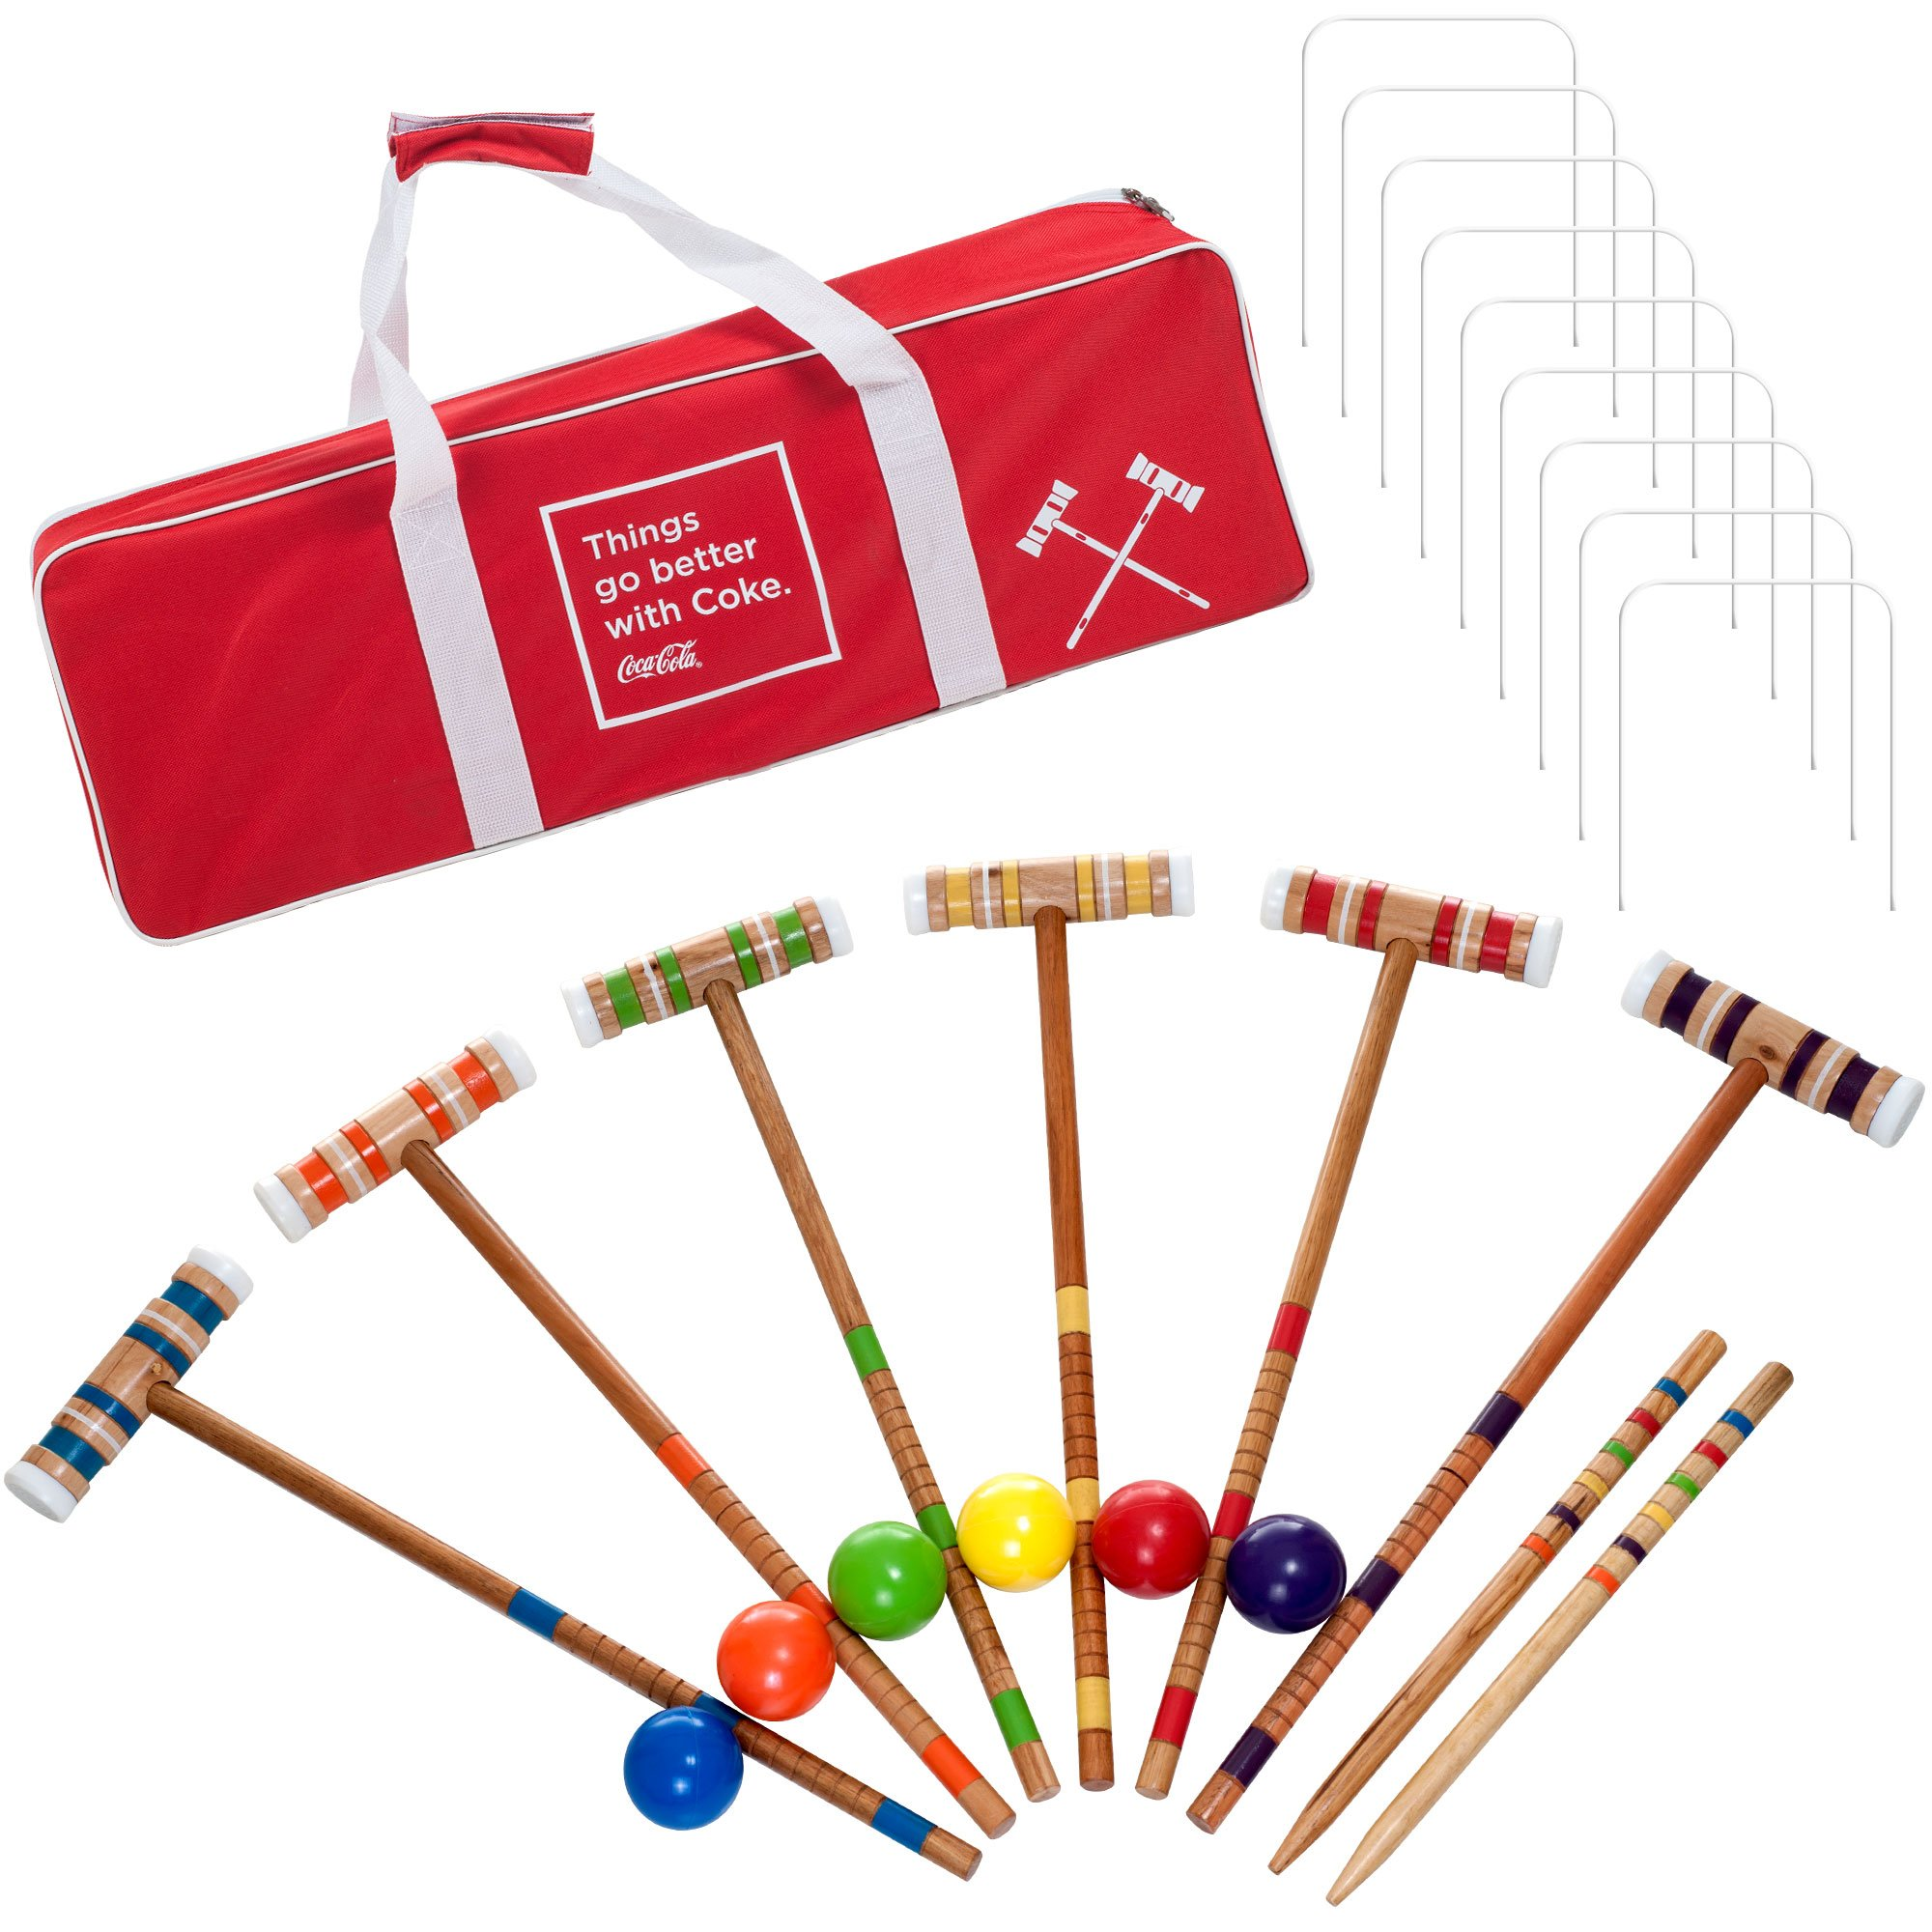 Coca Cola 24 Piece 6 Player Croquet Set - Complete Game with Carrying Case by Coca-Cola (Image #1)